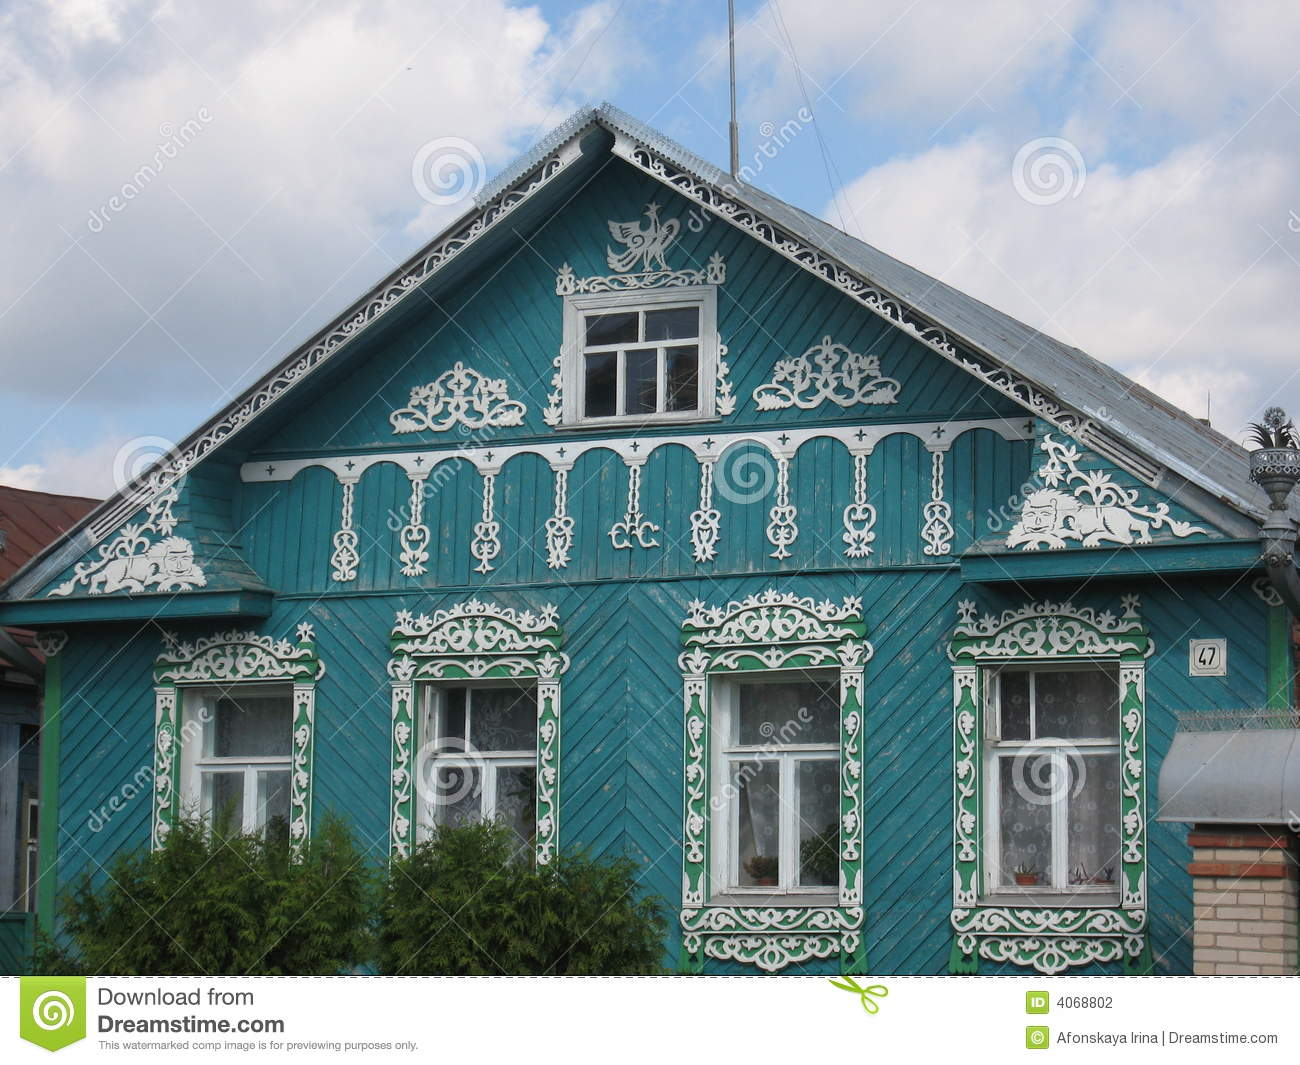 Suzdal Russia  city photos gallery : Suzdal, Russia Stock Photography Image: 4068802